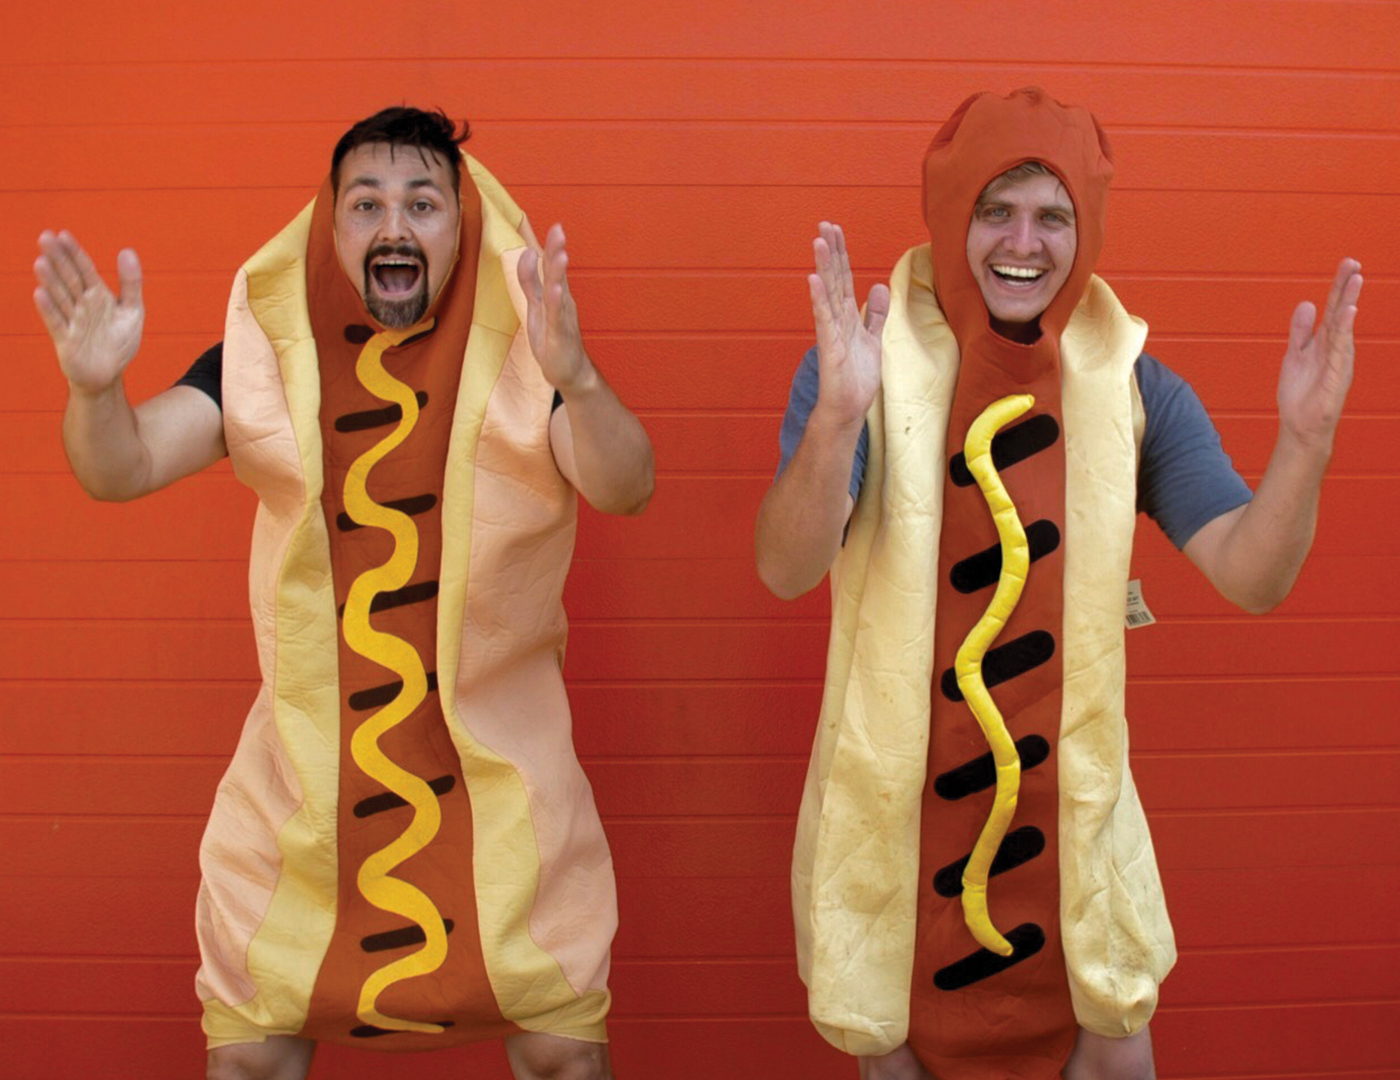 austin-and-colin-hot-dog-suit - Mac N' Cheese Media.jpg